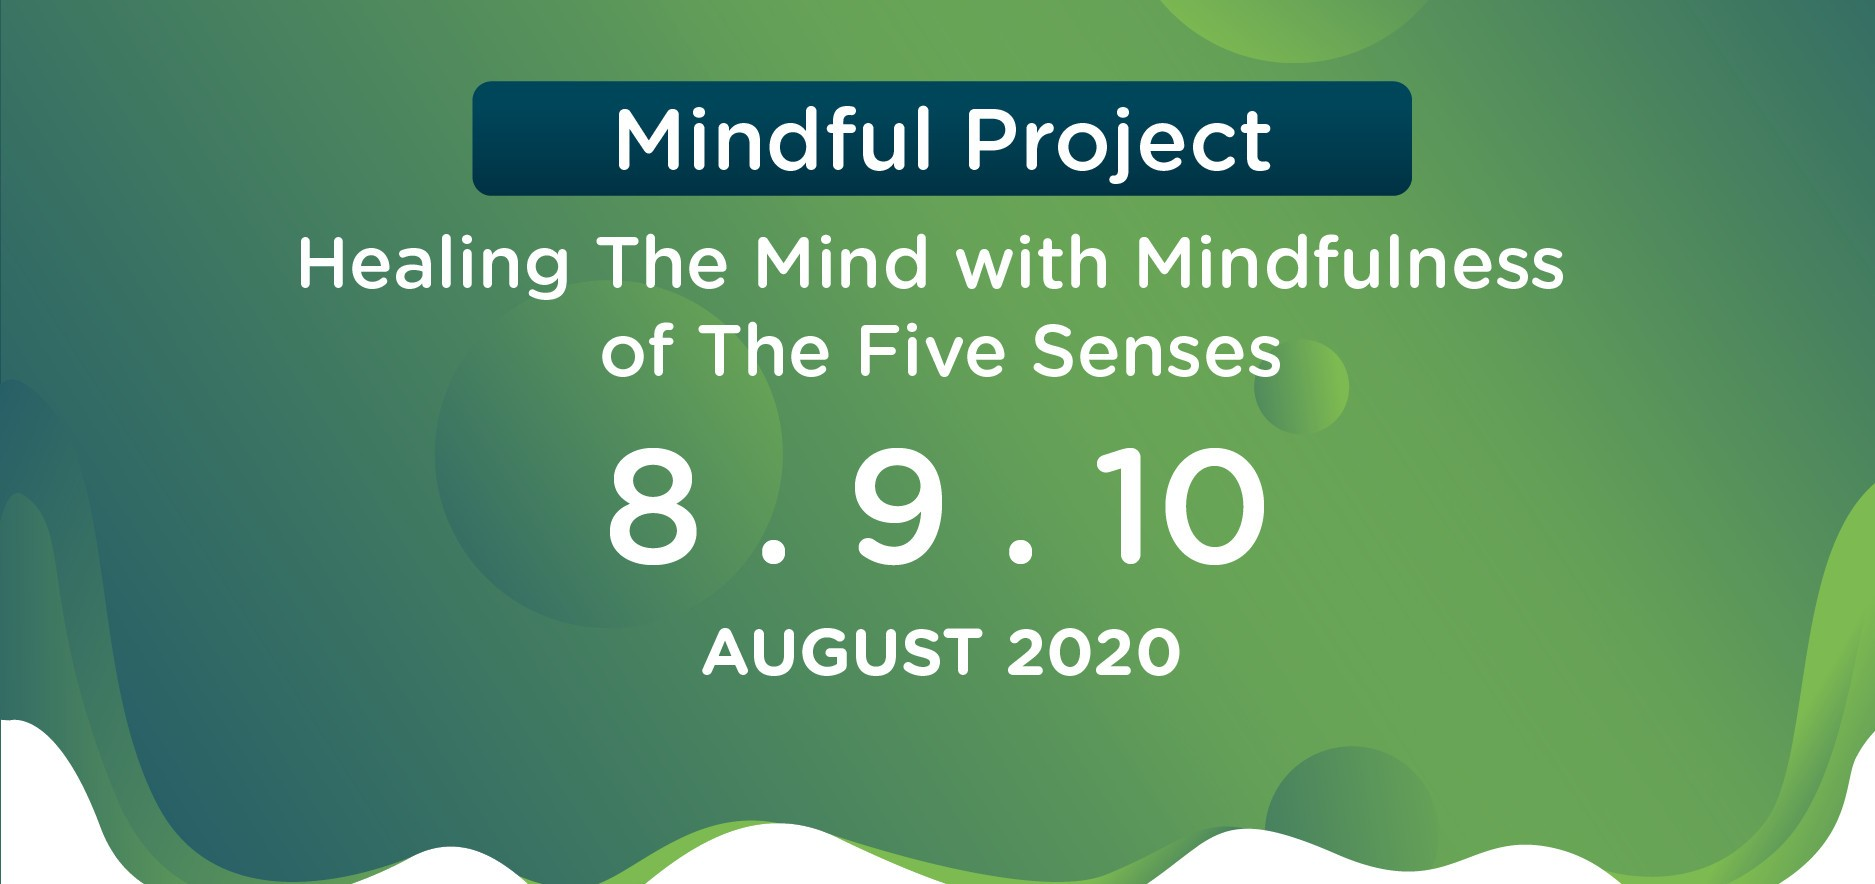 Mindful Project